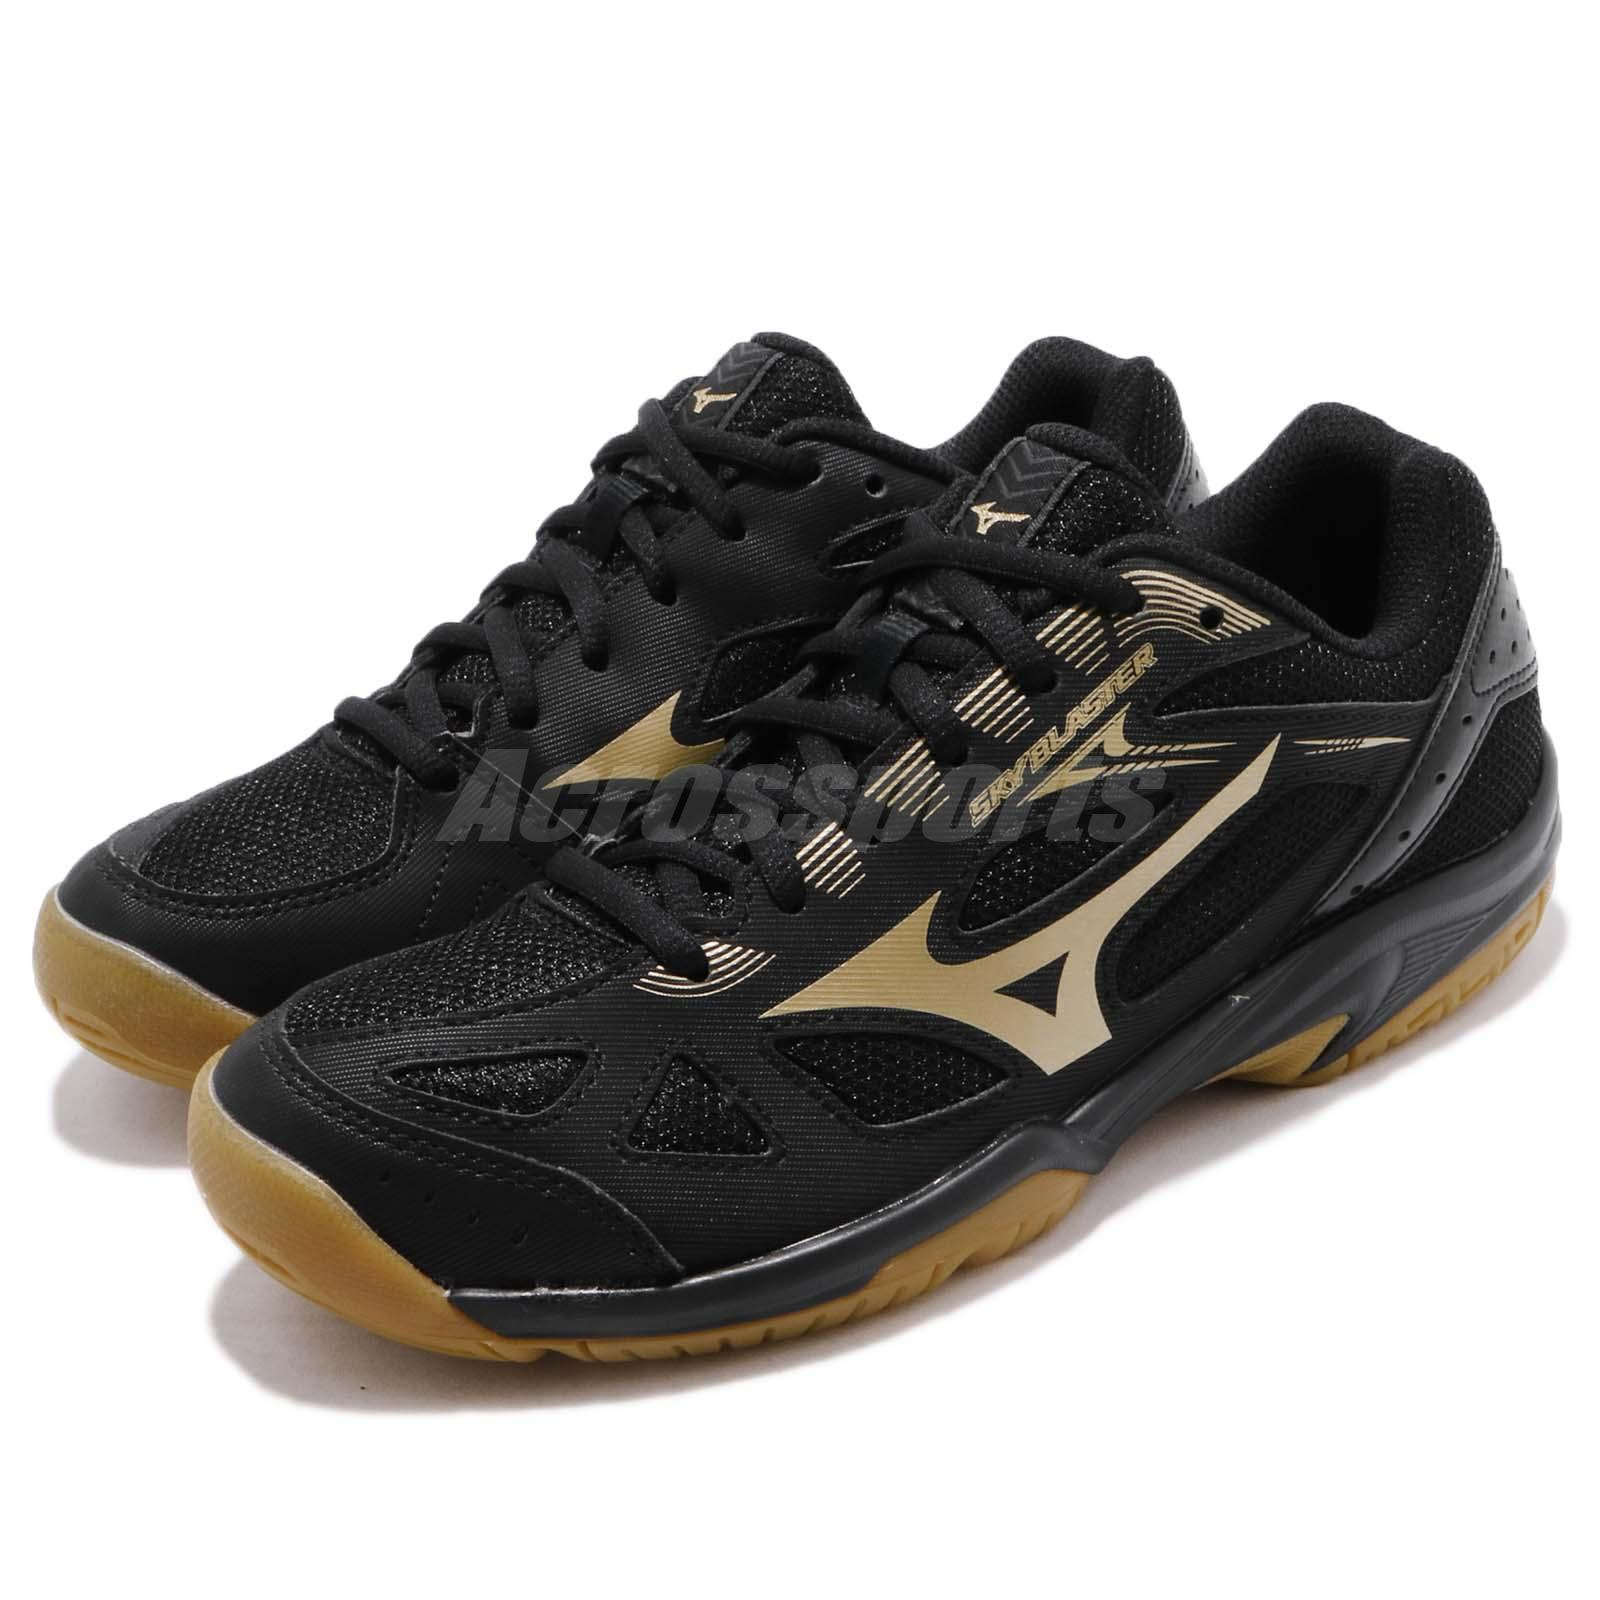 mizuno mens running shoes size 9 youth gold usa style coding